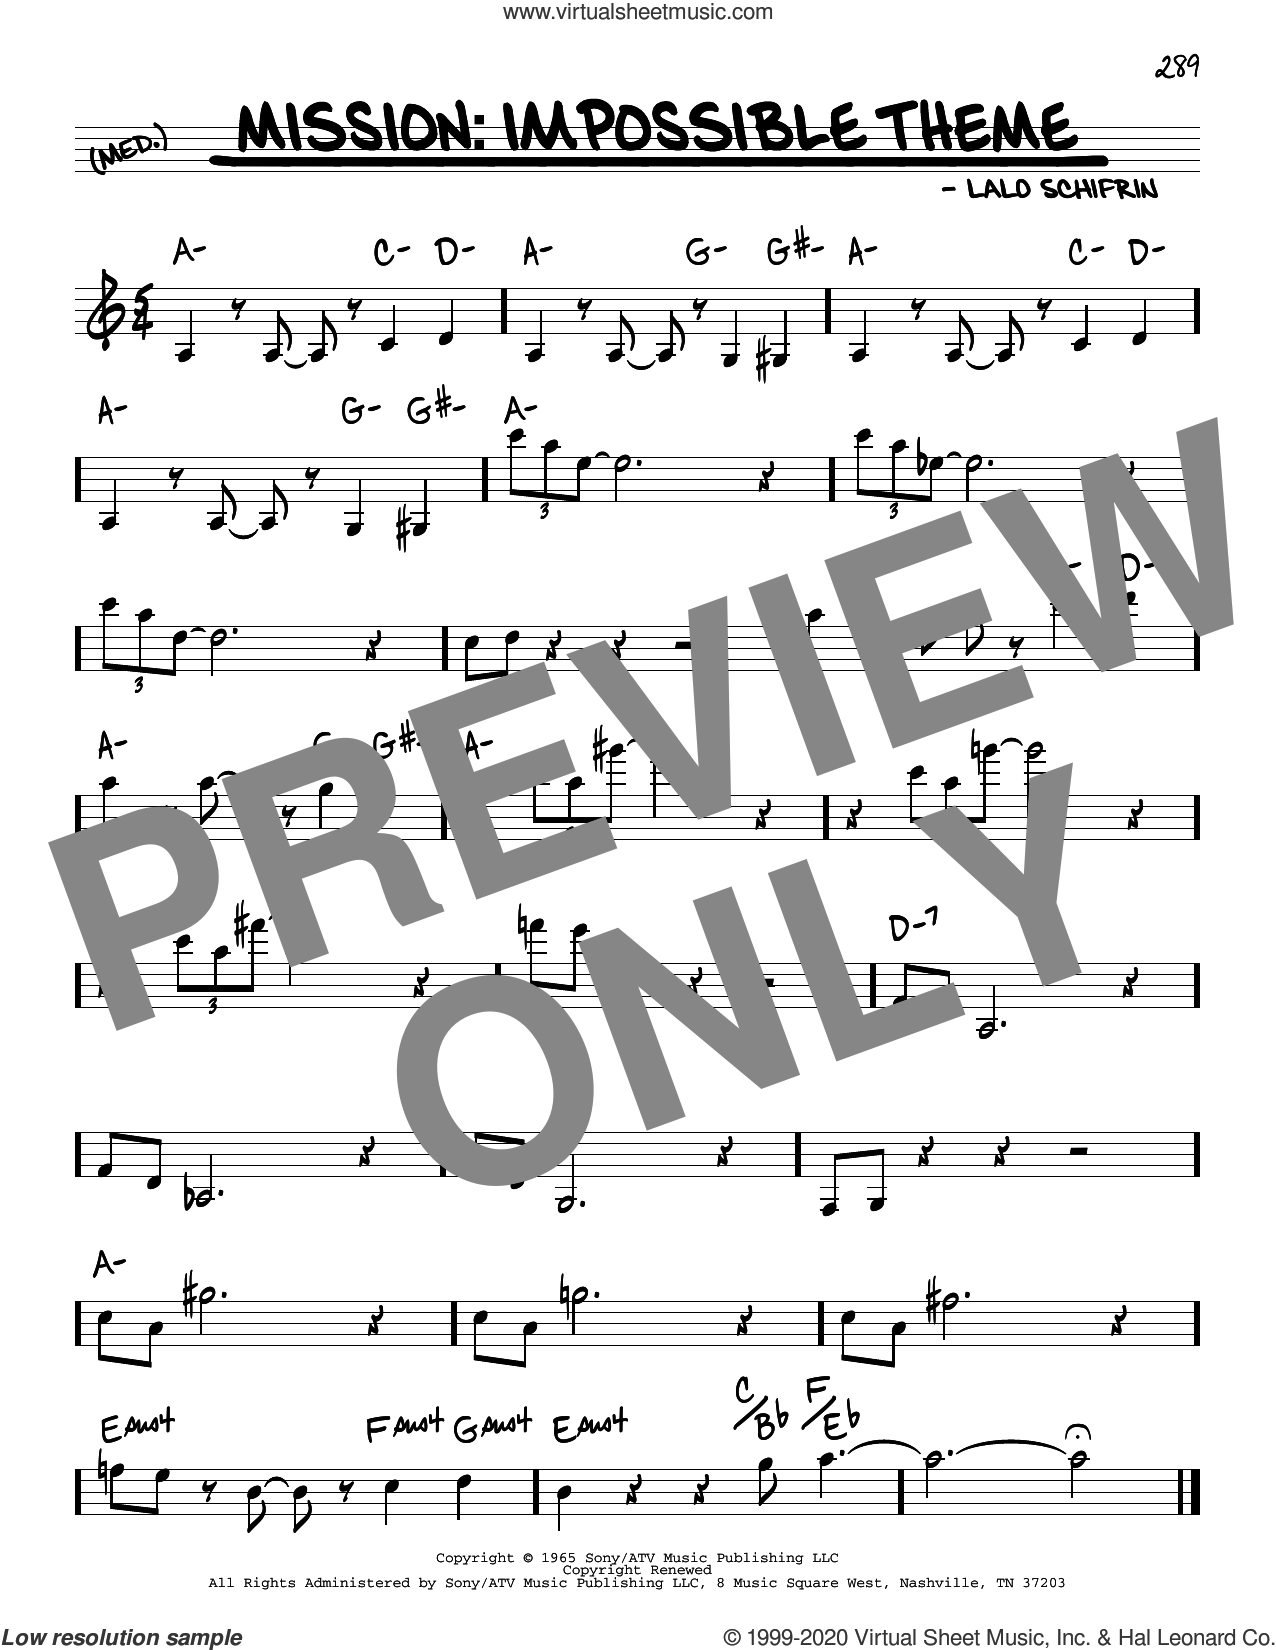 Mission: Impossible Theme sheet music for voice and other instruments (real book) by Lalo Schifrin, intermediate skill level